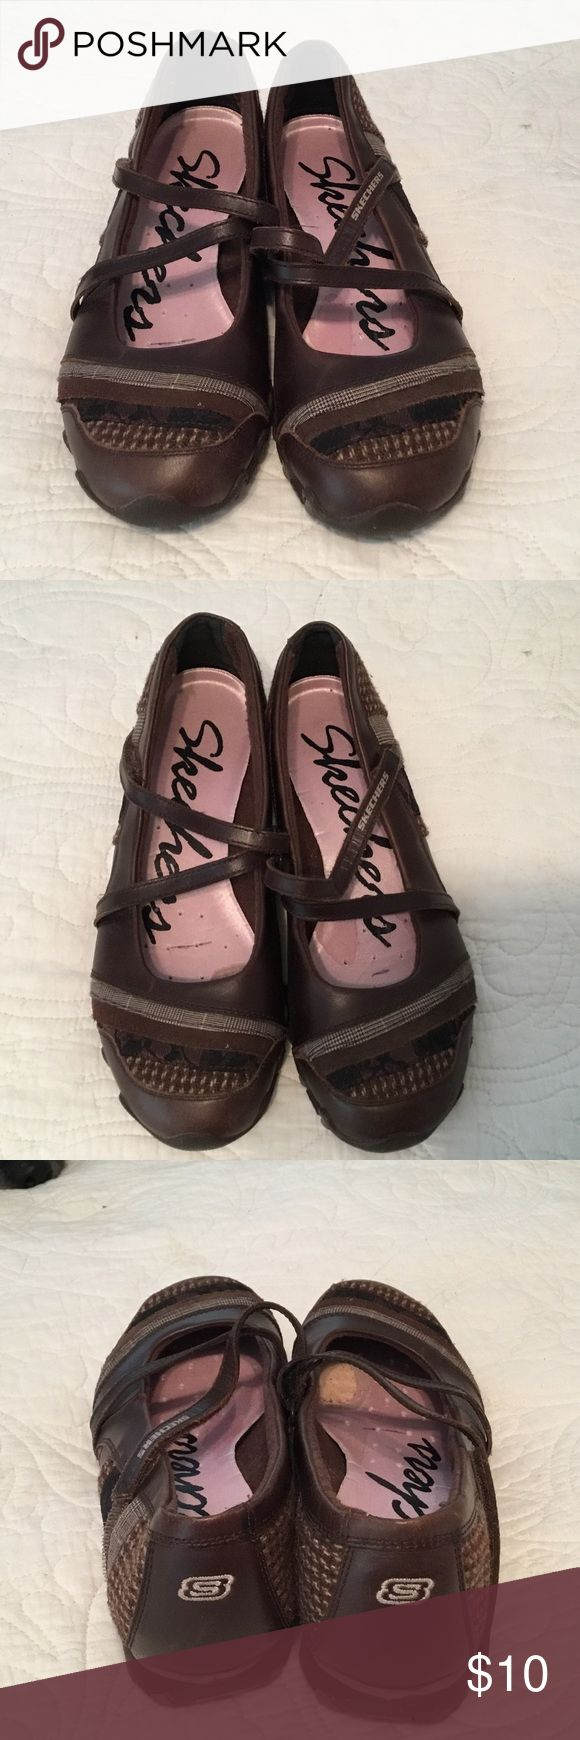 SKECHERS SHOES CUTE BROWN PATTERNED FLATS. VERY GOOD CONDITION. Skechers Shoes Flats & Loafers